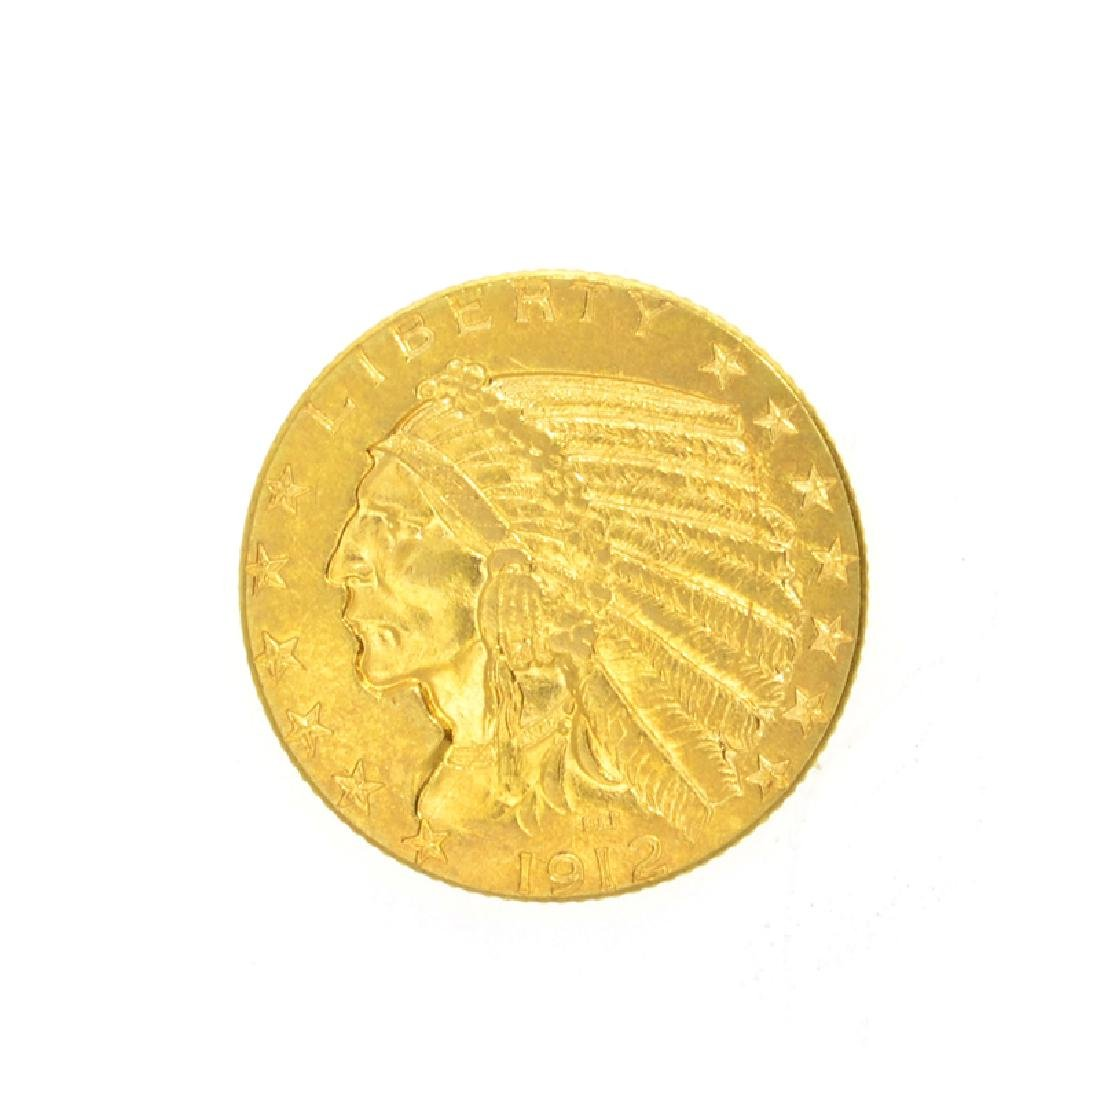 *1912 $5 U.S. Indian Head Gold Coin (DF)